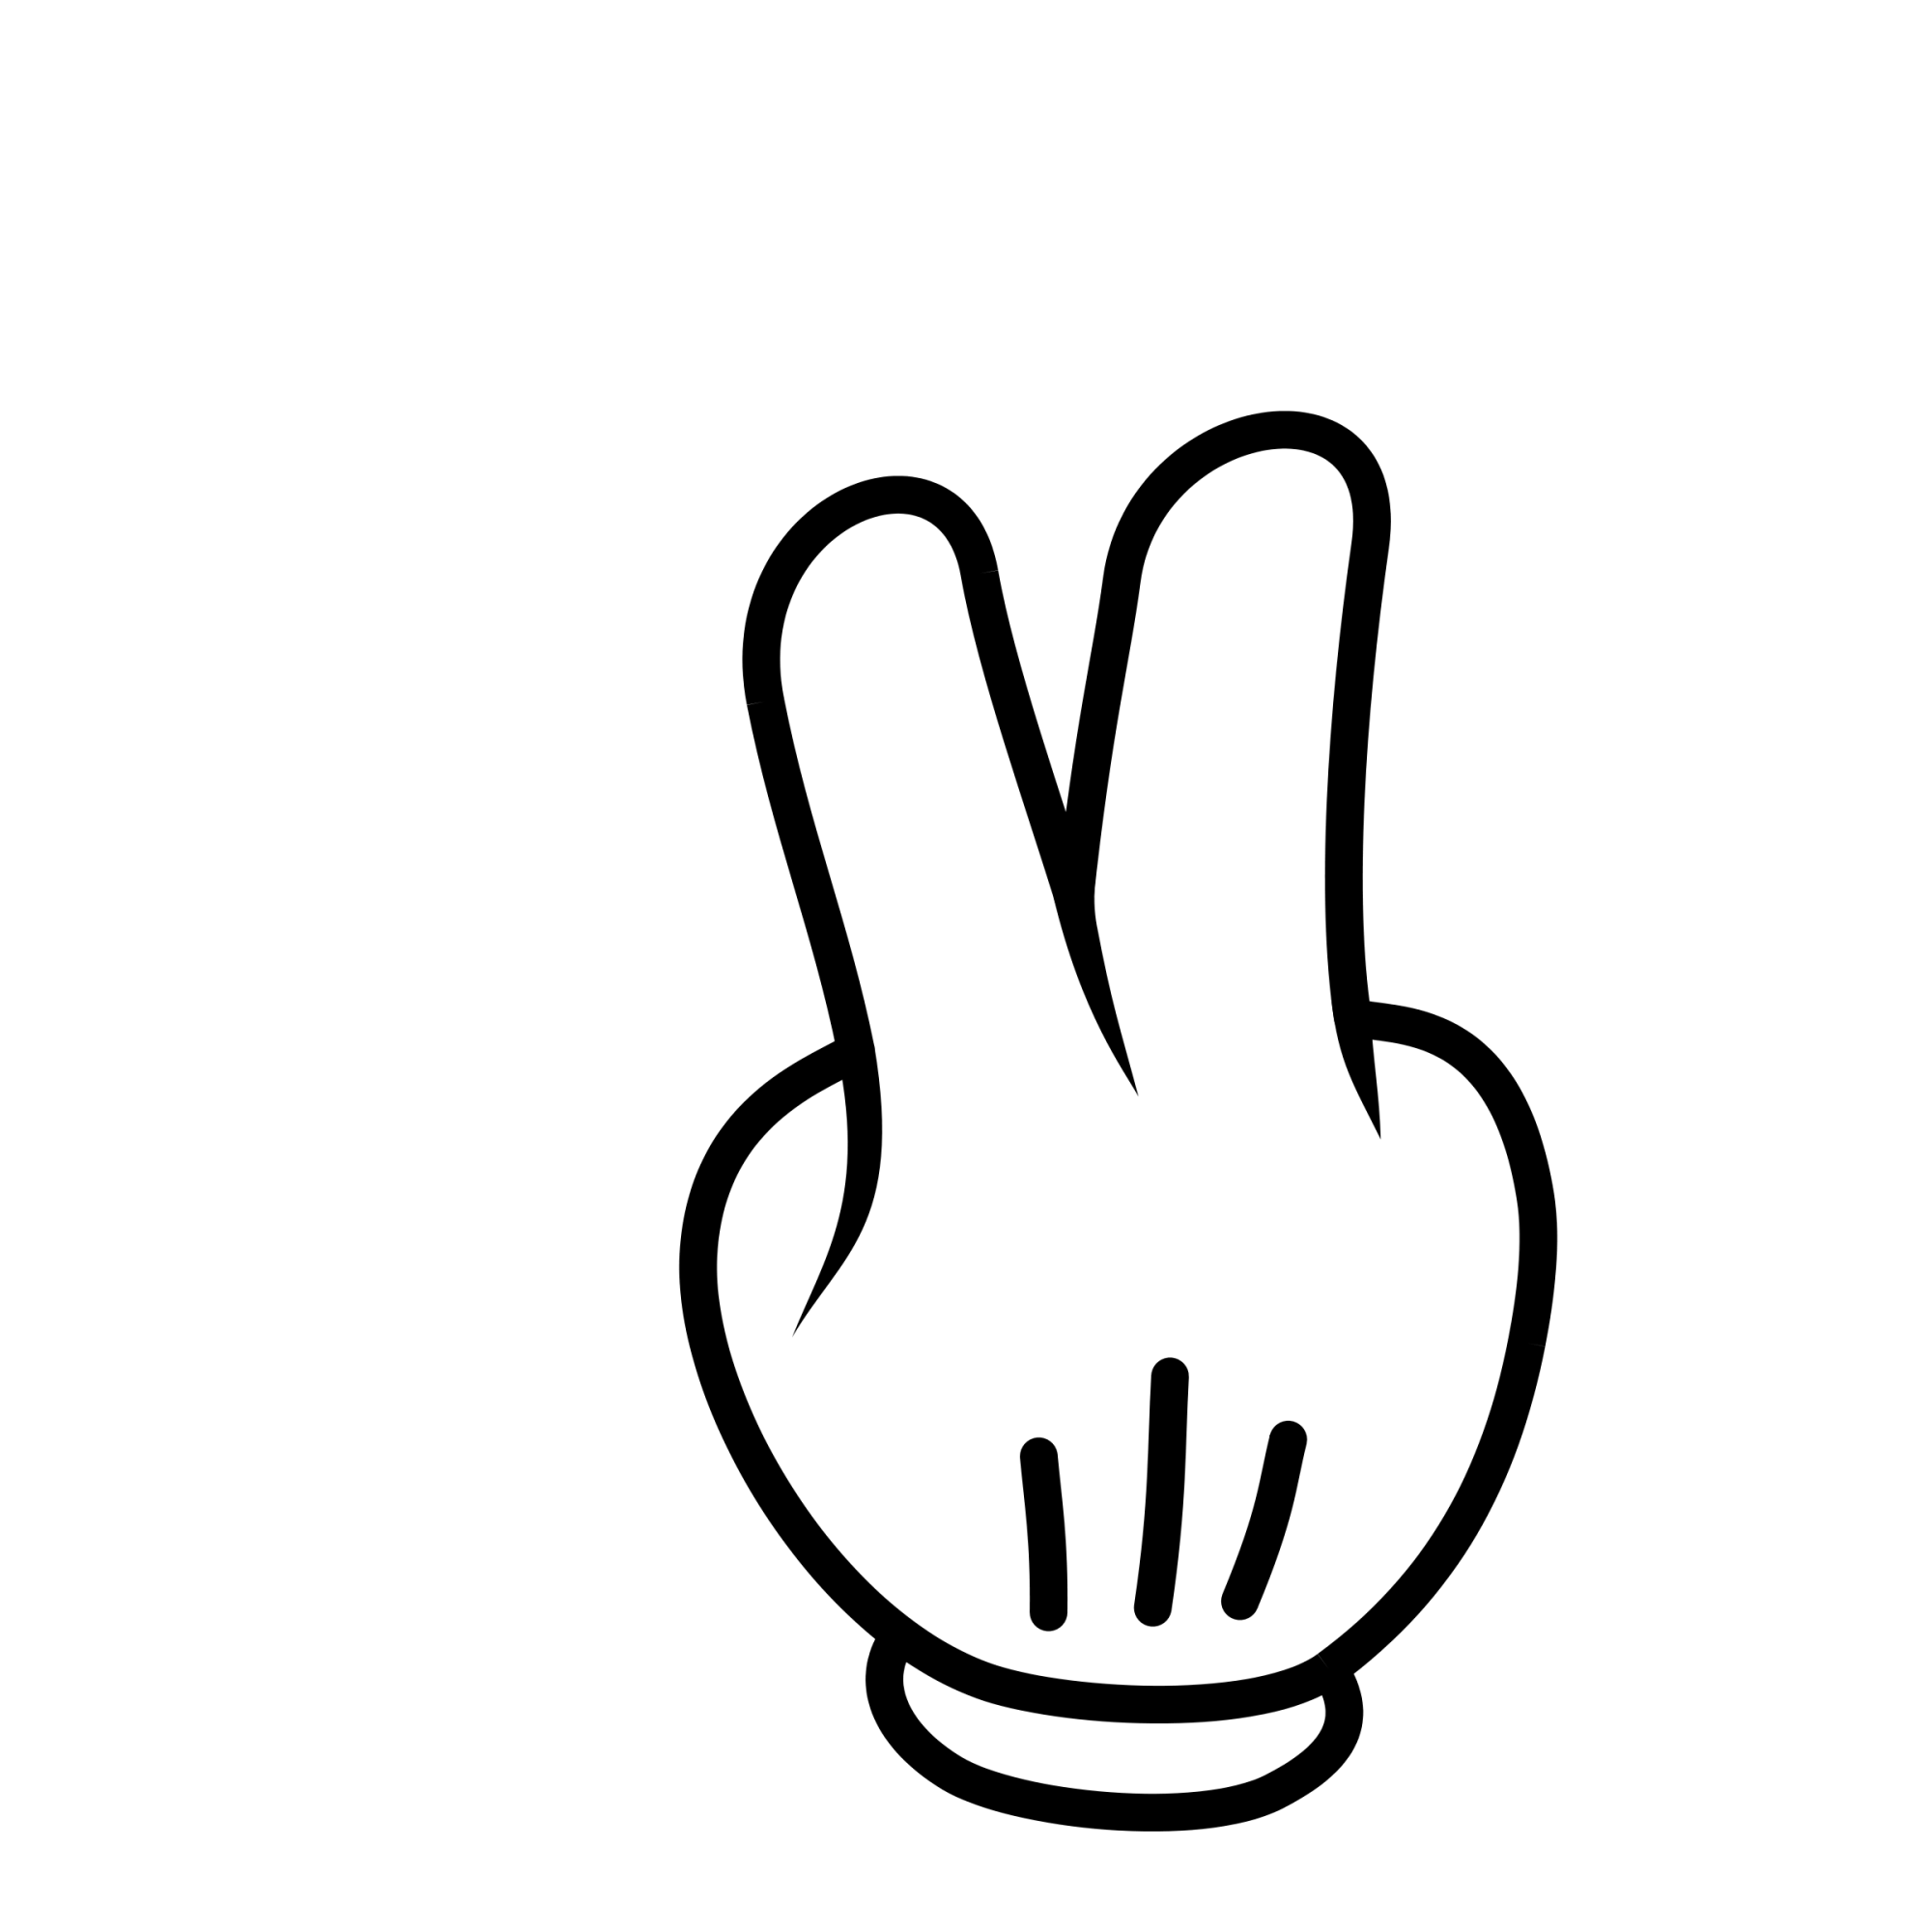 hight resolution of images for 5 finger clipart